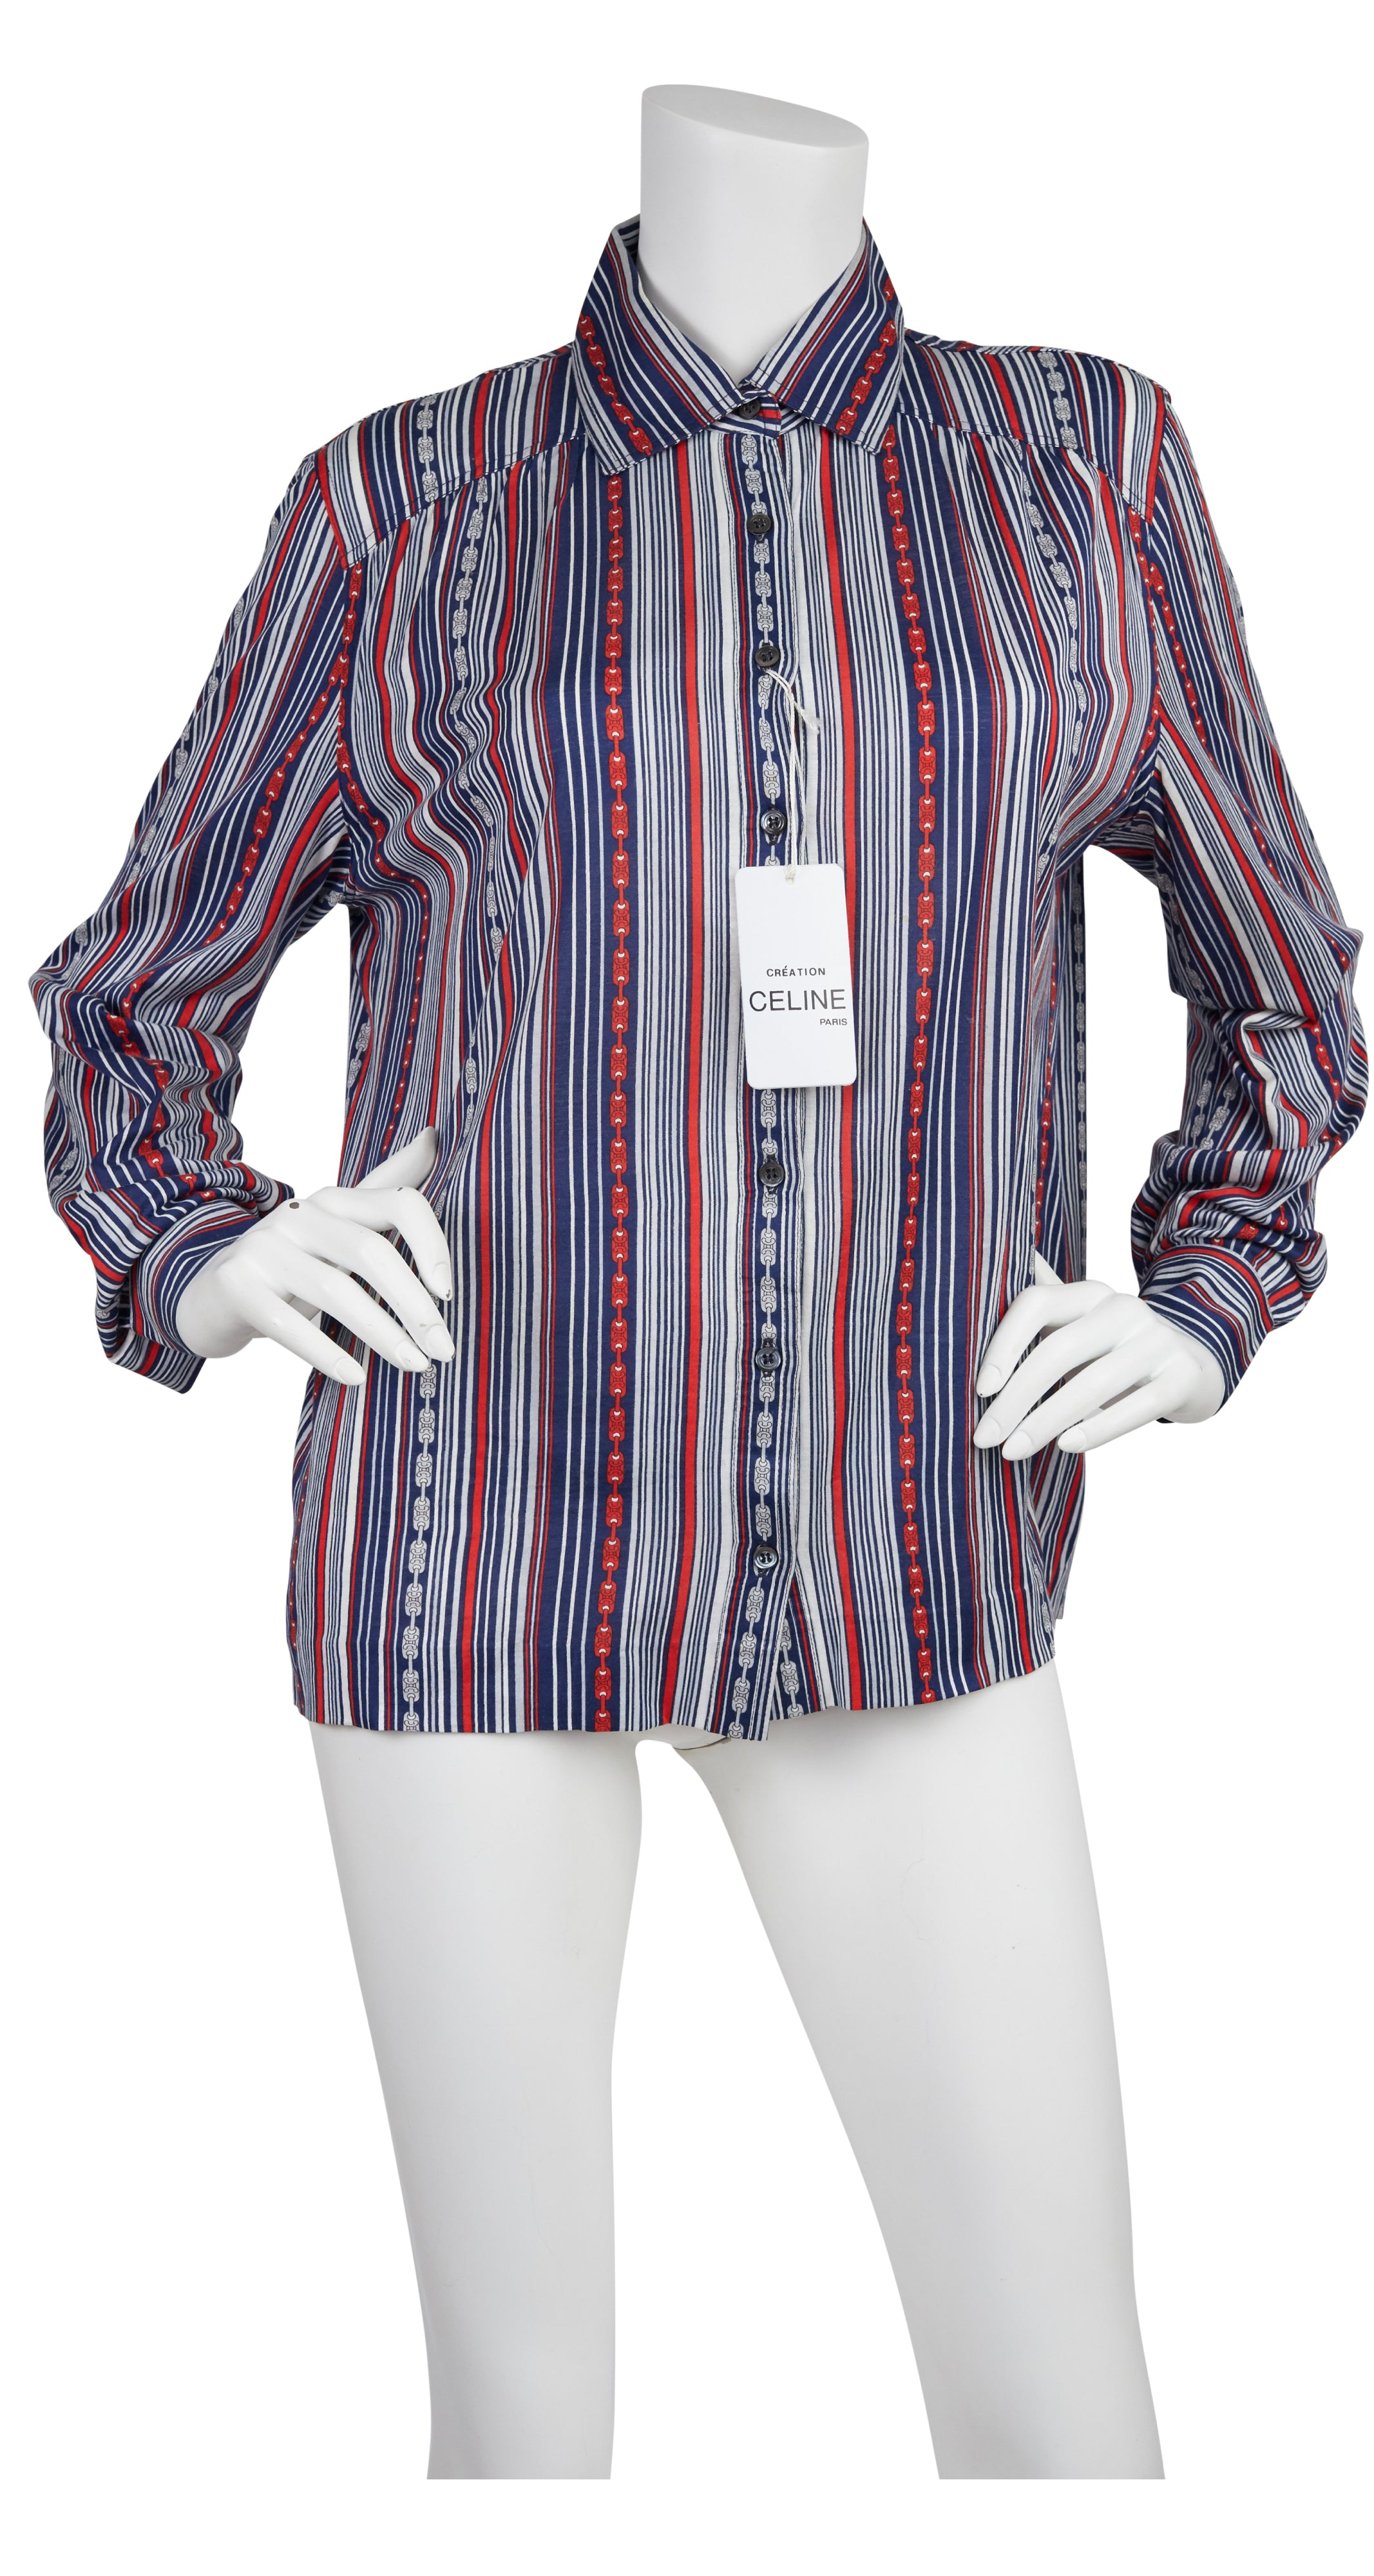 1970s Striped Chain-Link Cotton Button-Up Blouse